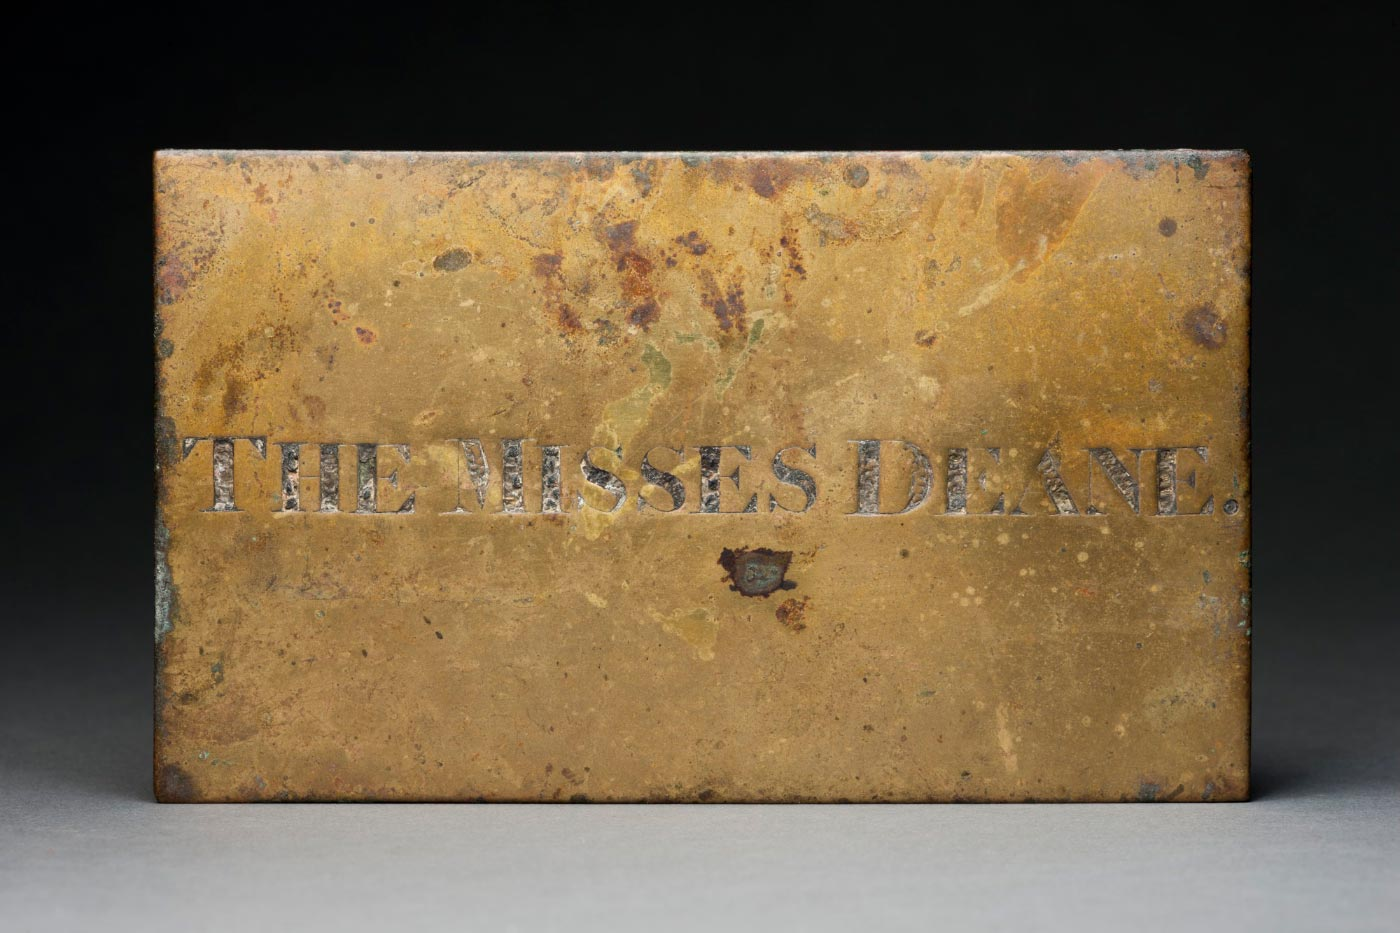 Brass name plate with the letters in capitals 'THE MISSES DEANE' engraved in the middle, showing signs of wear with several dents and metal clasps at the edges for hanging.